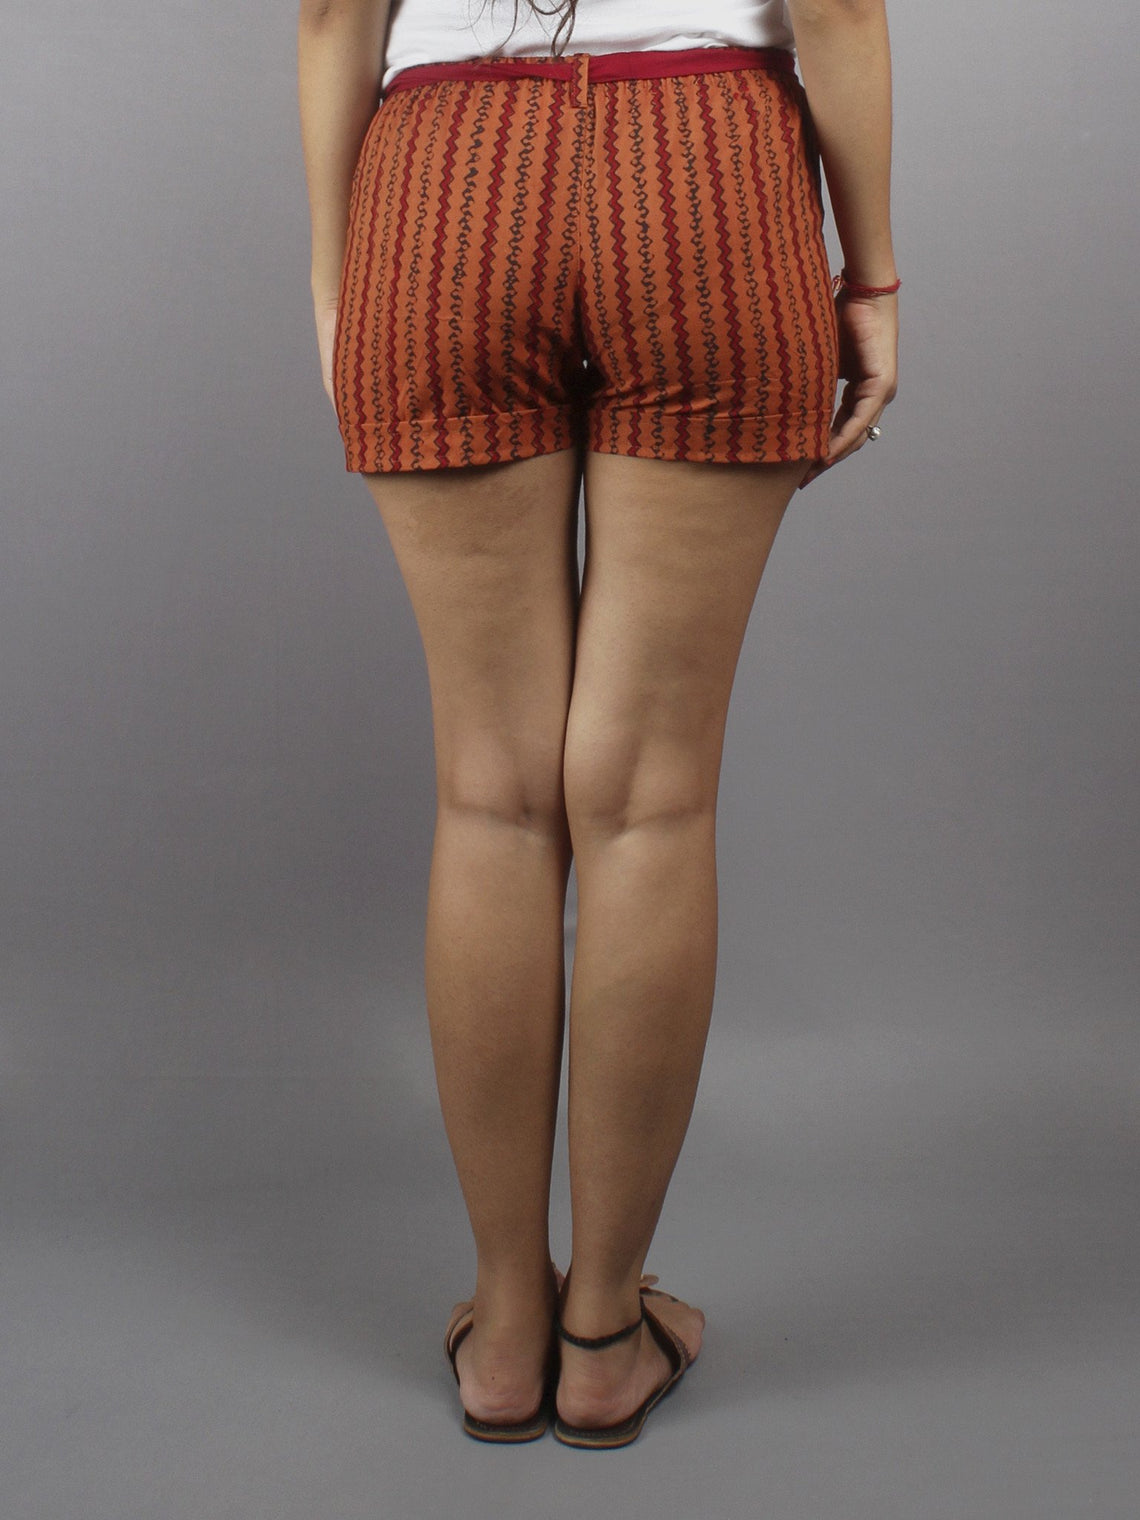 Red Hand Block Printed Shorts With Belt -S5296022